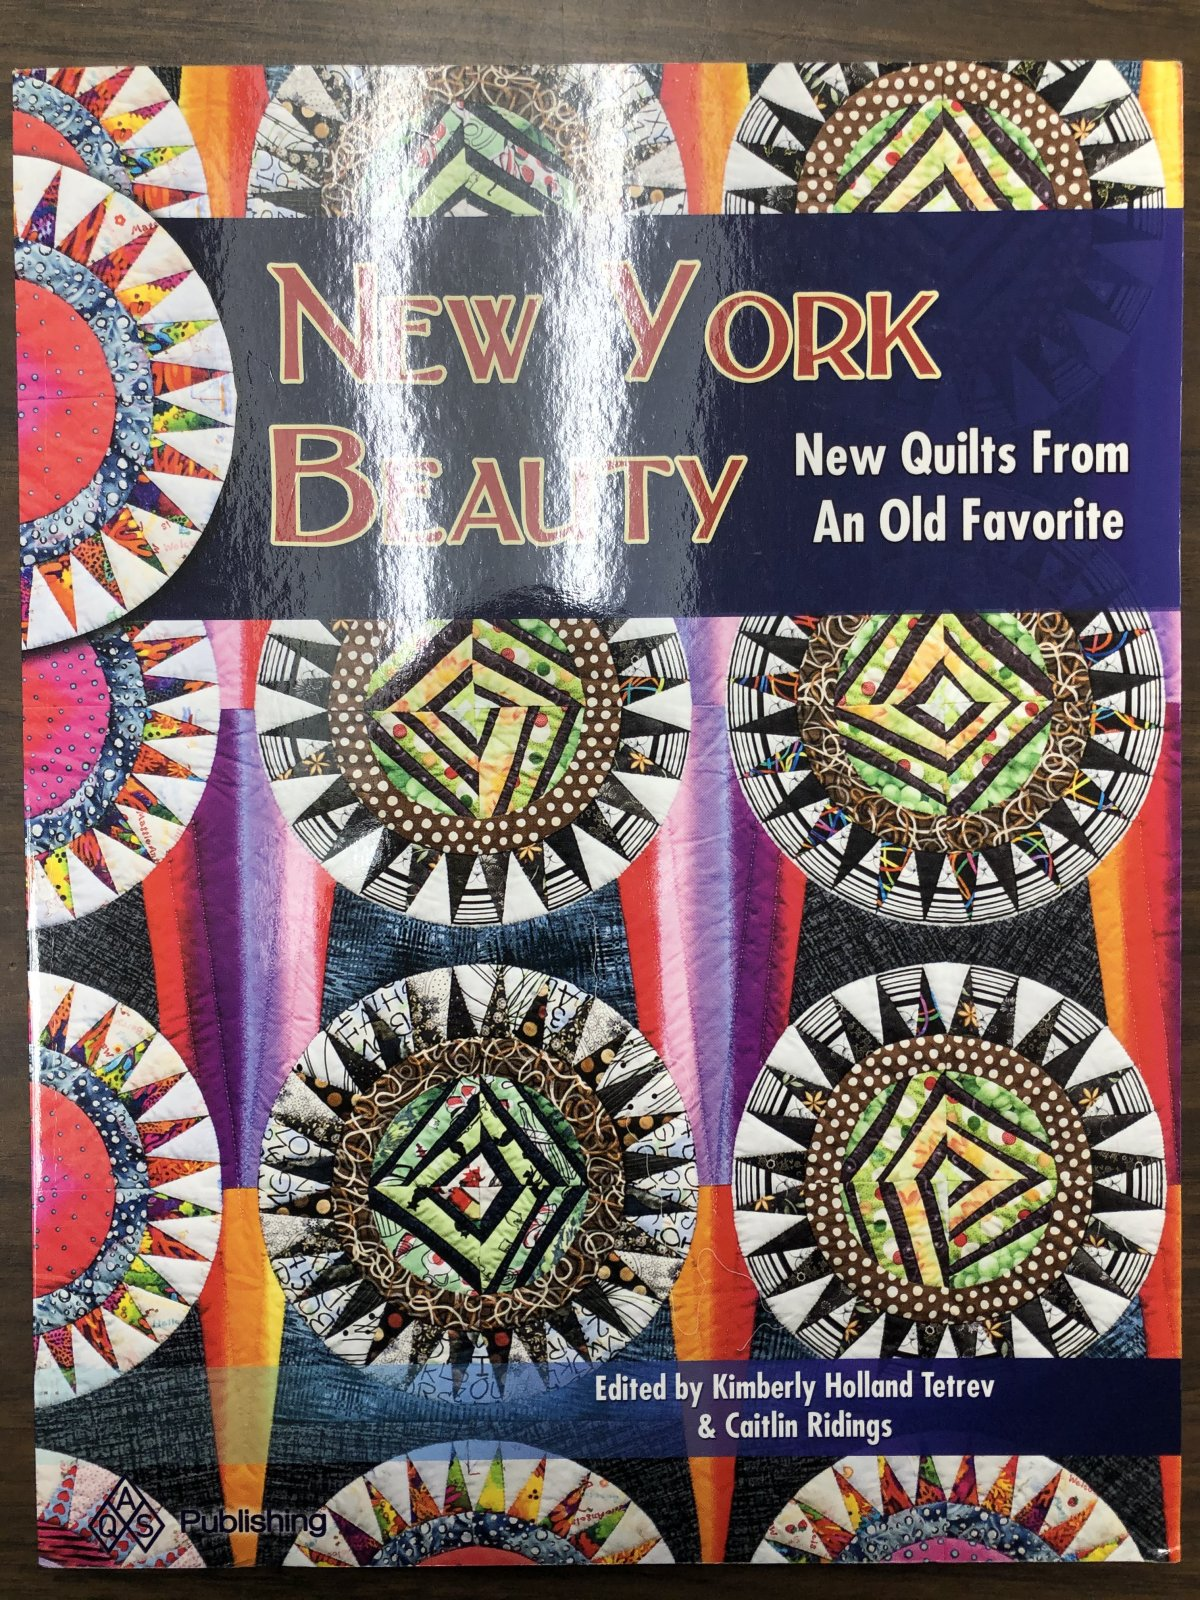 New York Beauty:  New Quilts From an Old Favorite